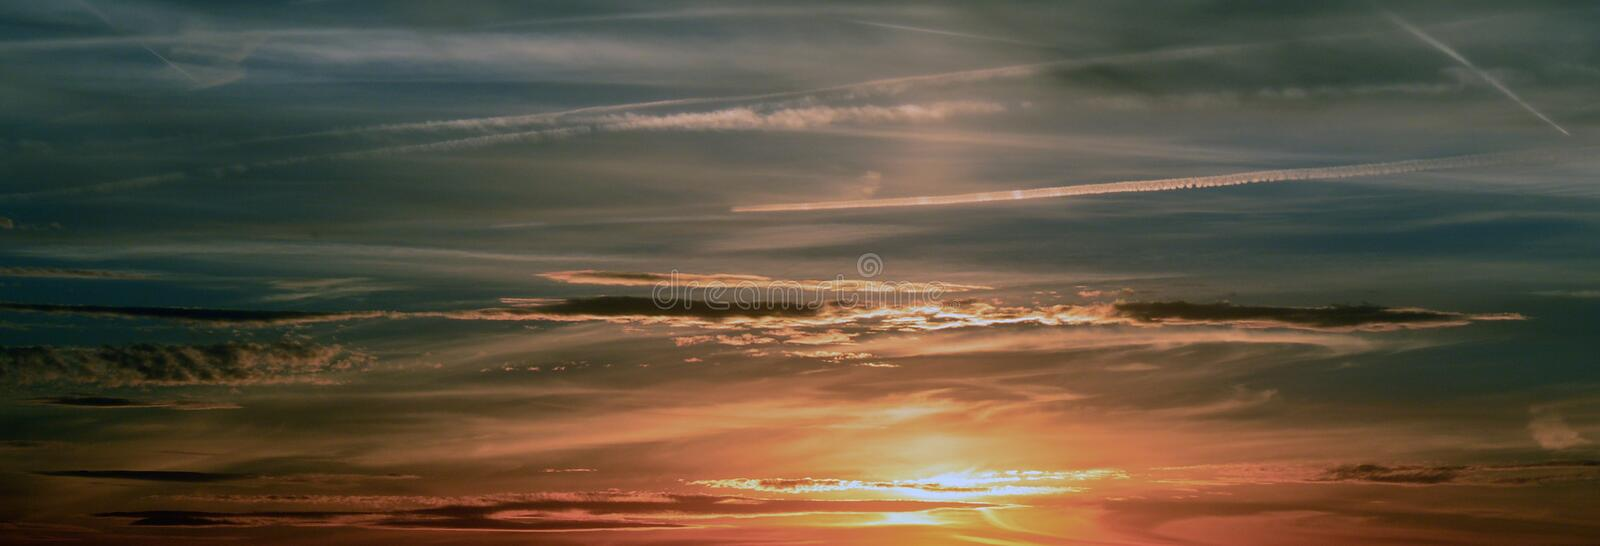 Sunset View of a Clouds stock photo